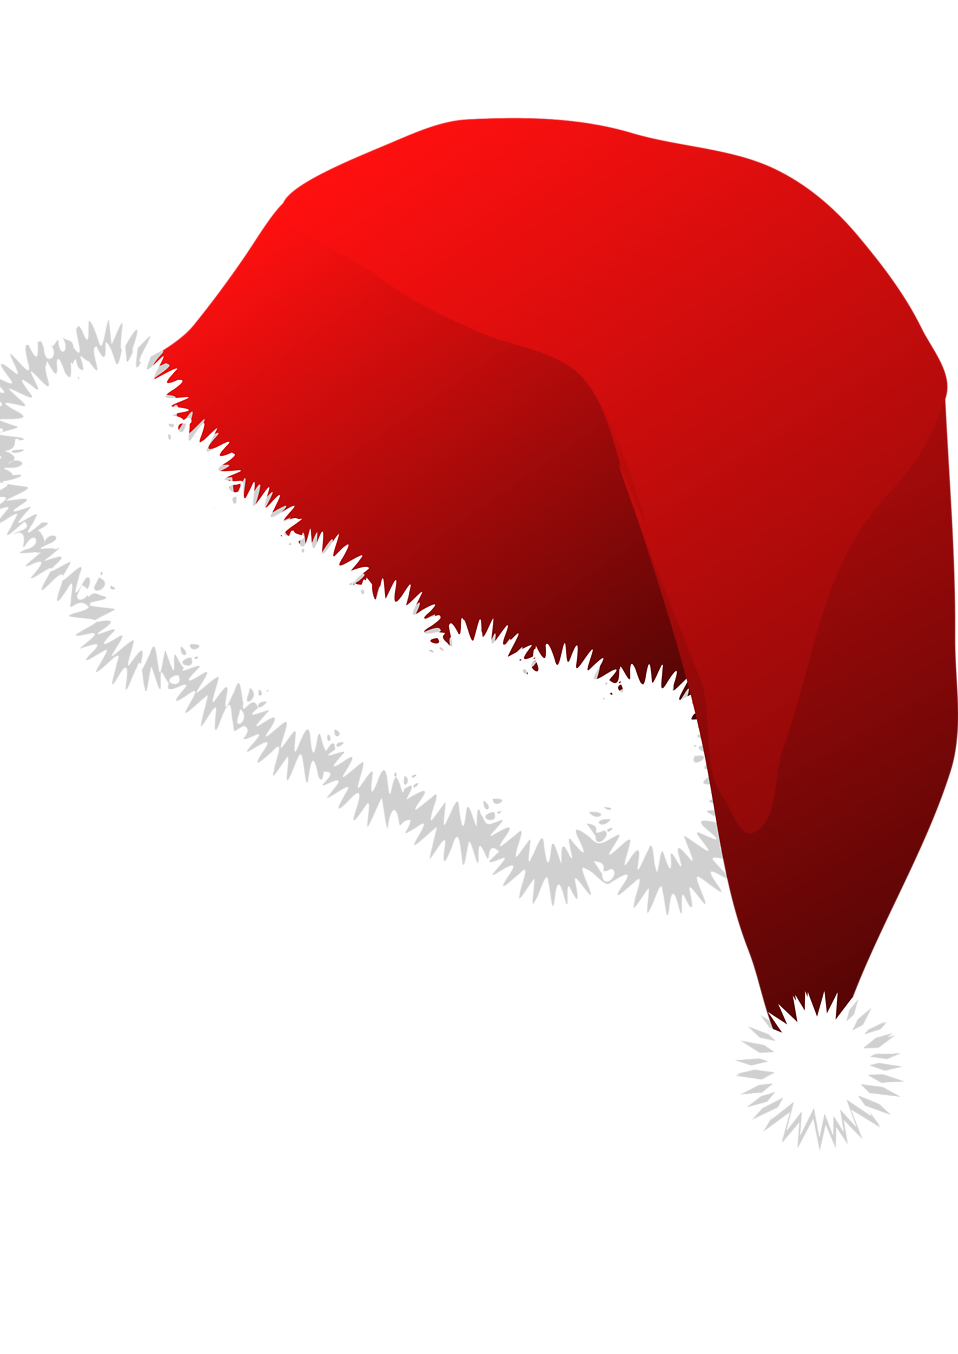 Free Stock Photo Illustration of a red santa hat